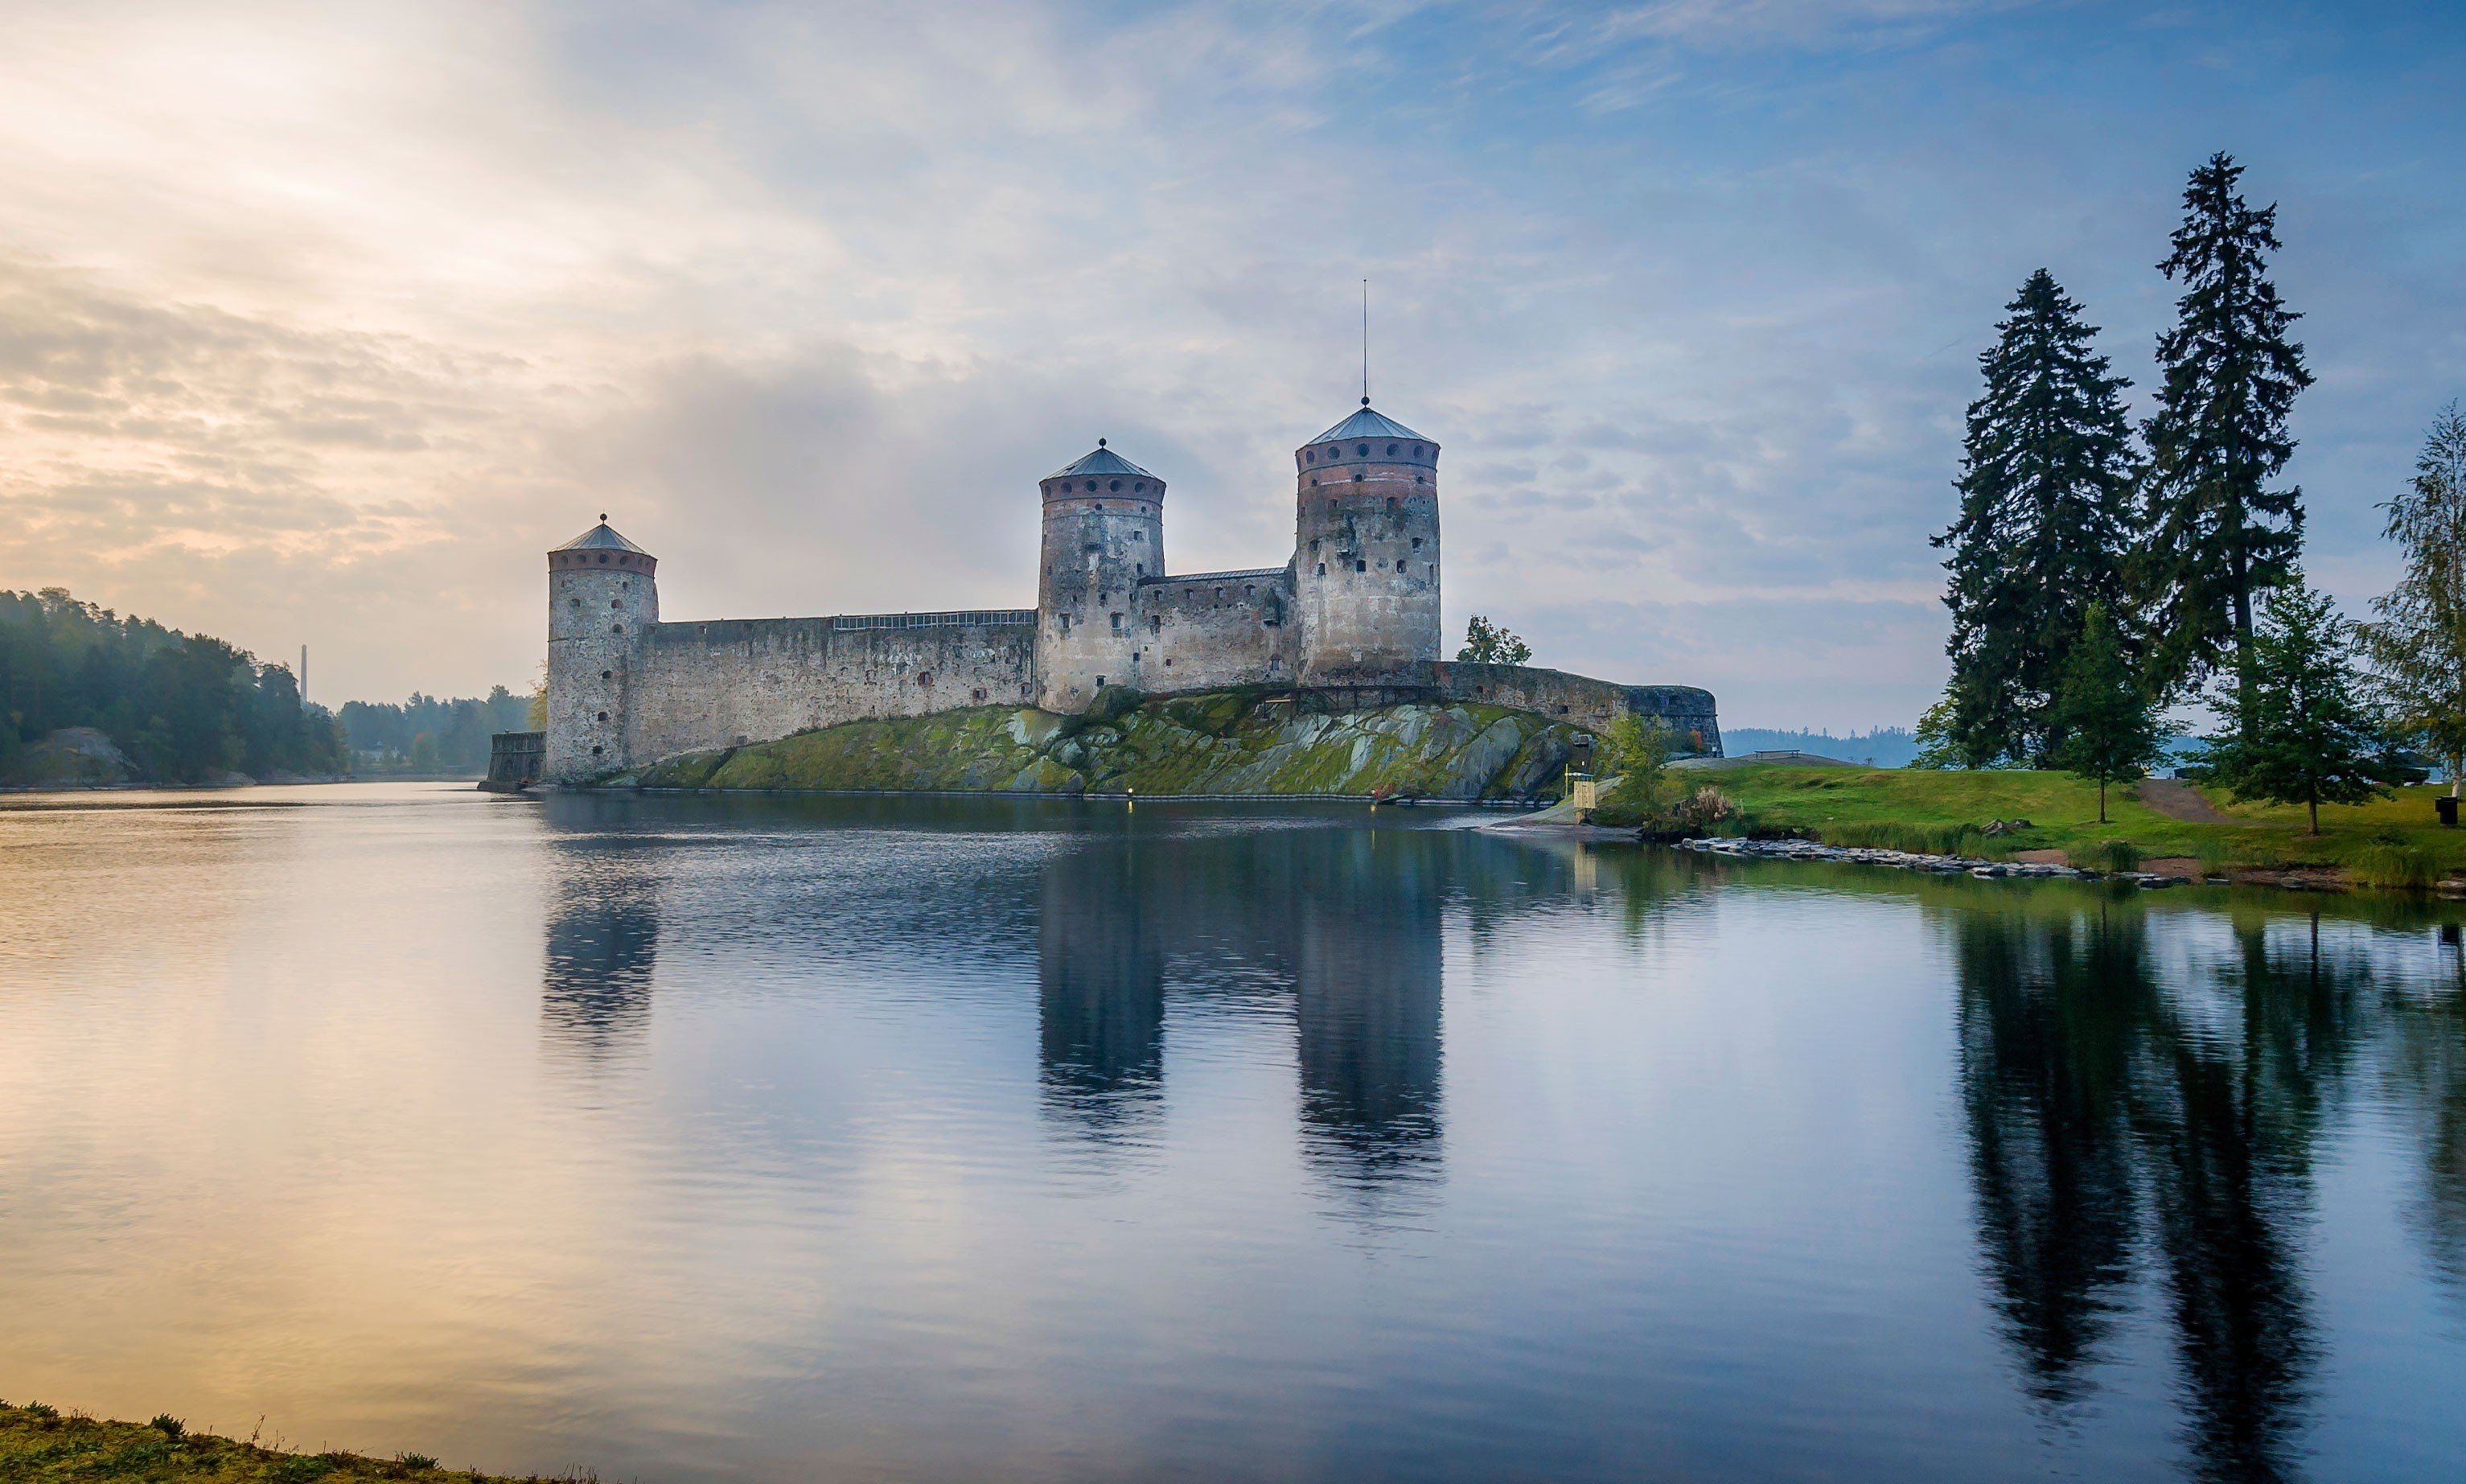 Trip Ideas outdoor water sky reflection Lake landmark building River château castle cloud morning house landscape tower reservoir cityscape dusk skyline surrounded pond day